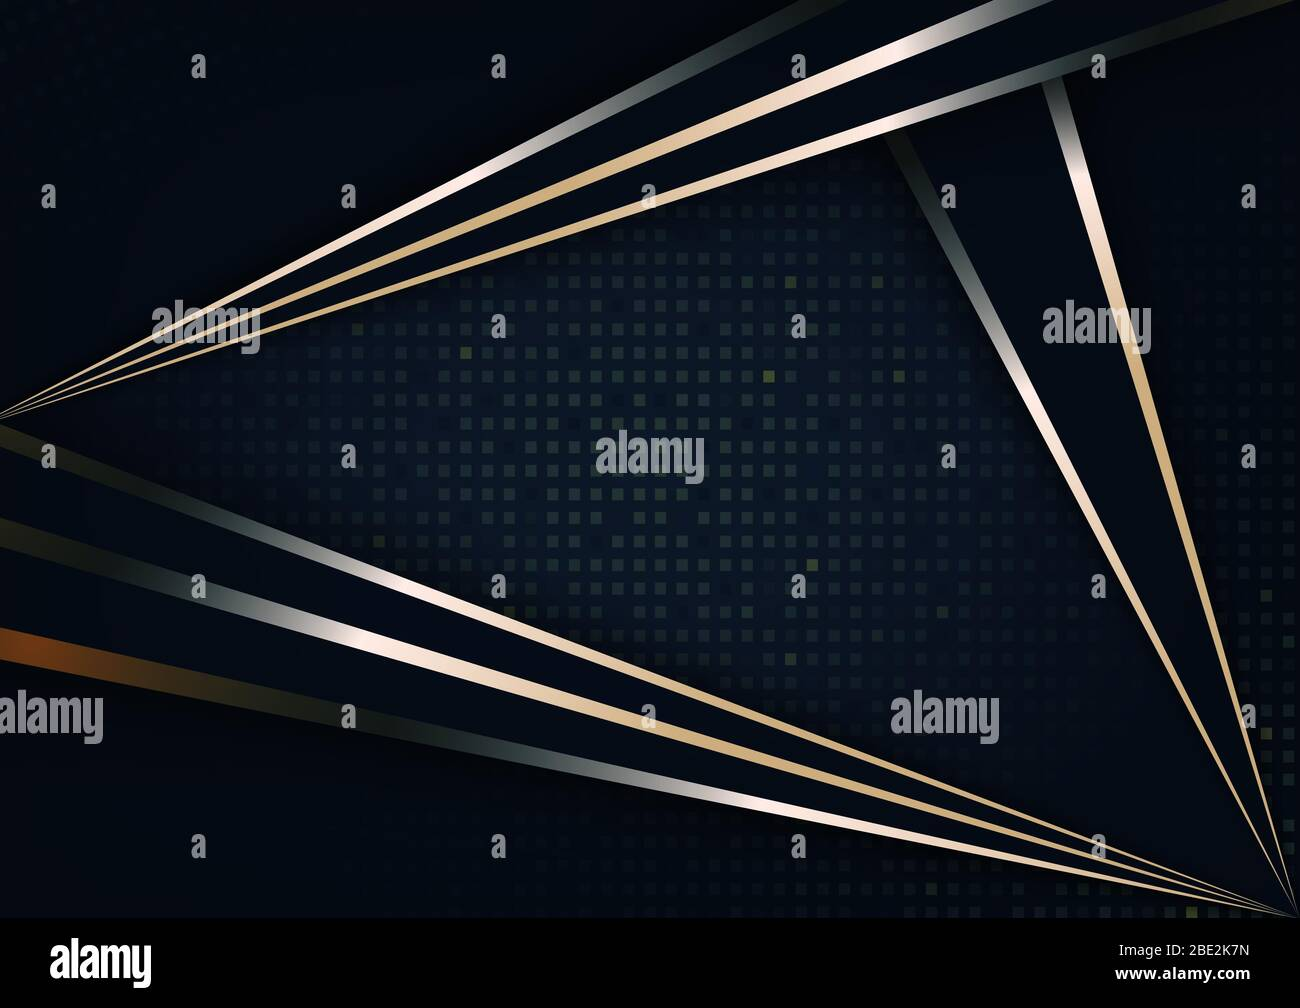 Dark Abstract Wallpaper With Gold Glitter With Black Background Stock Photo Alamy